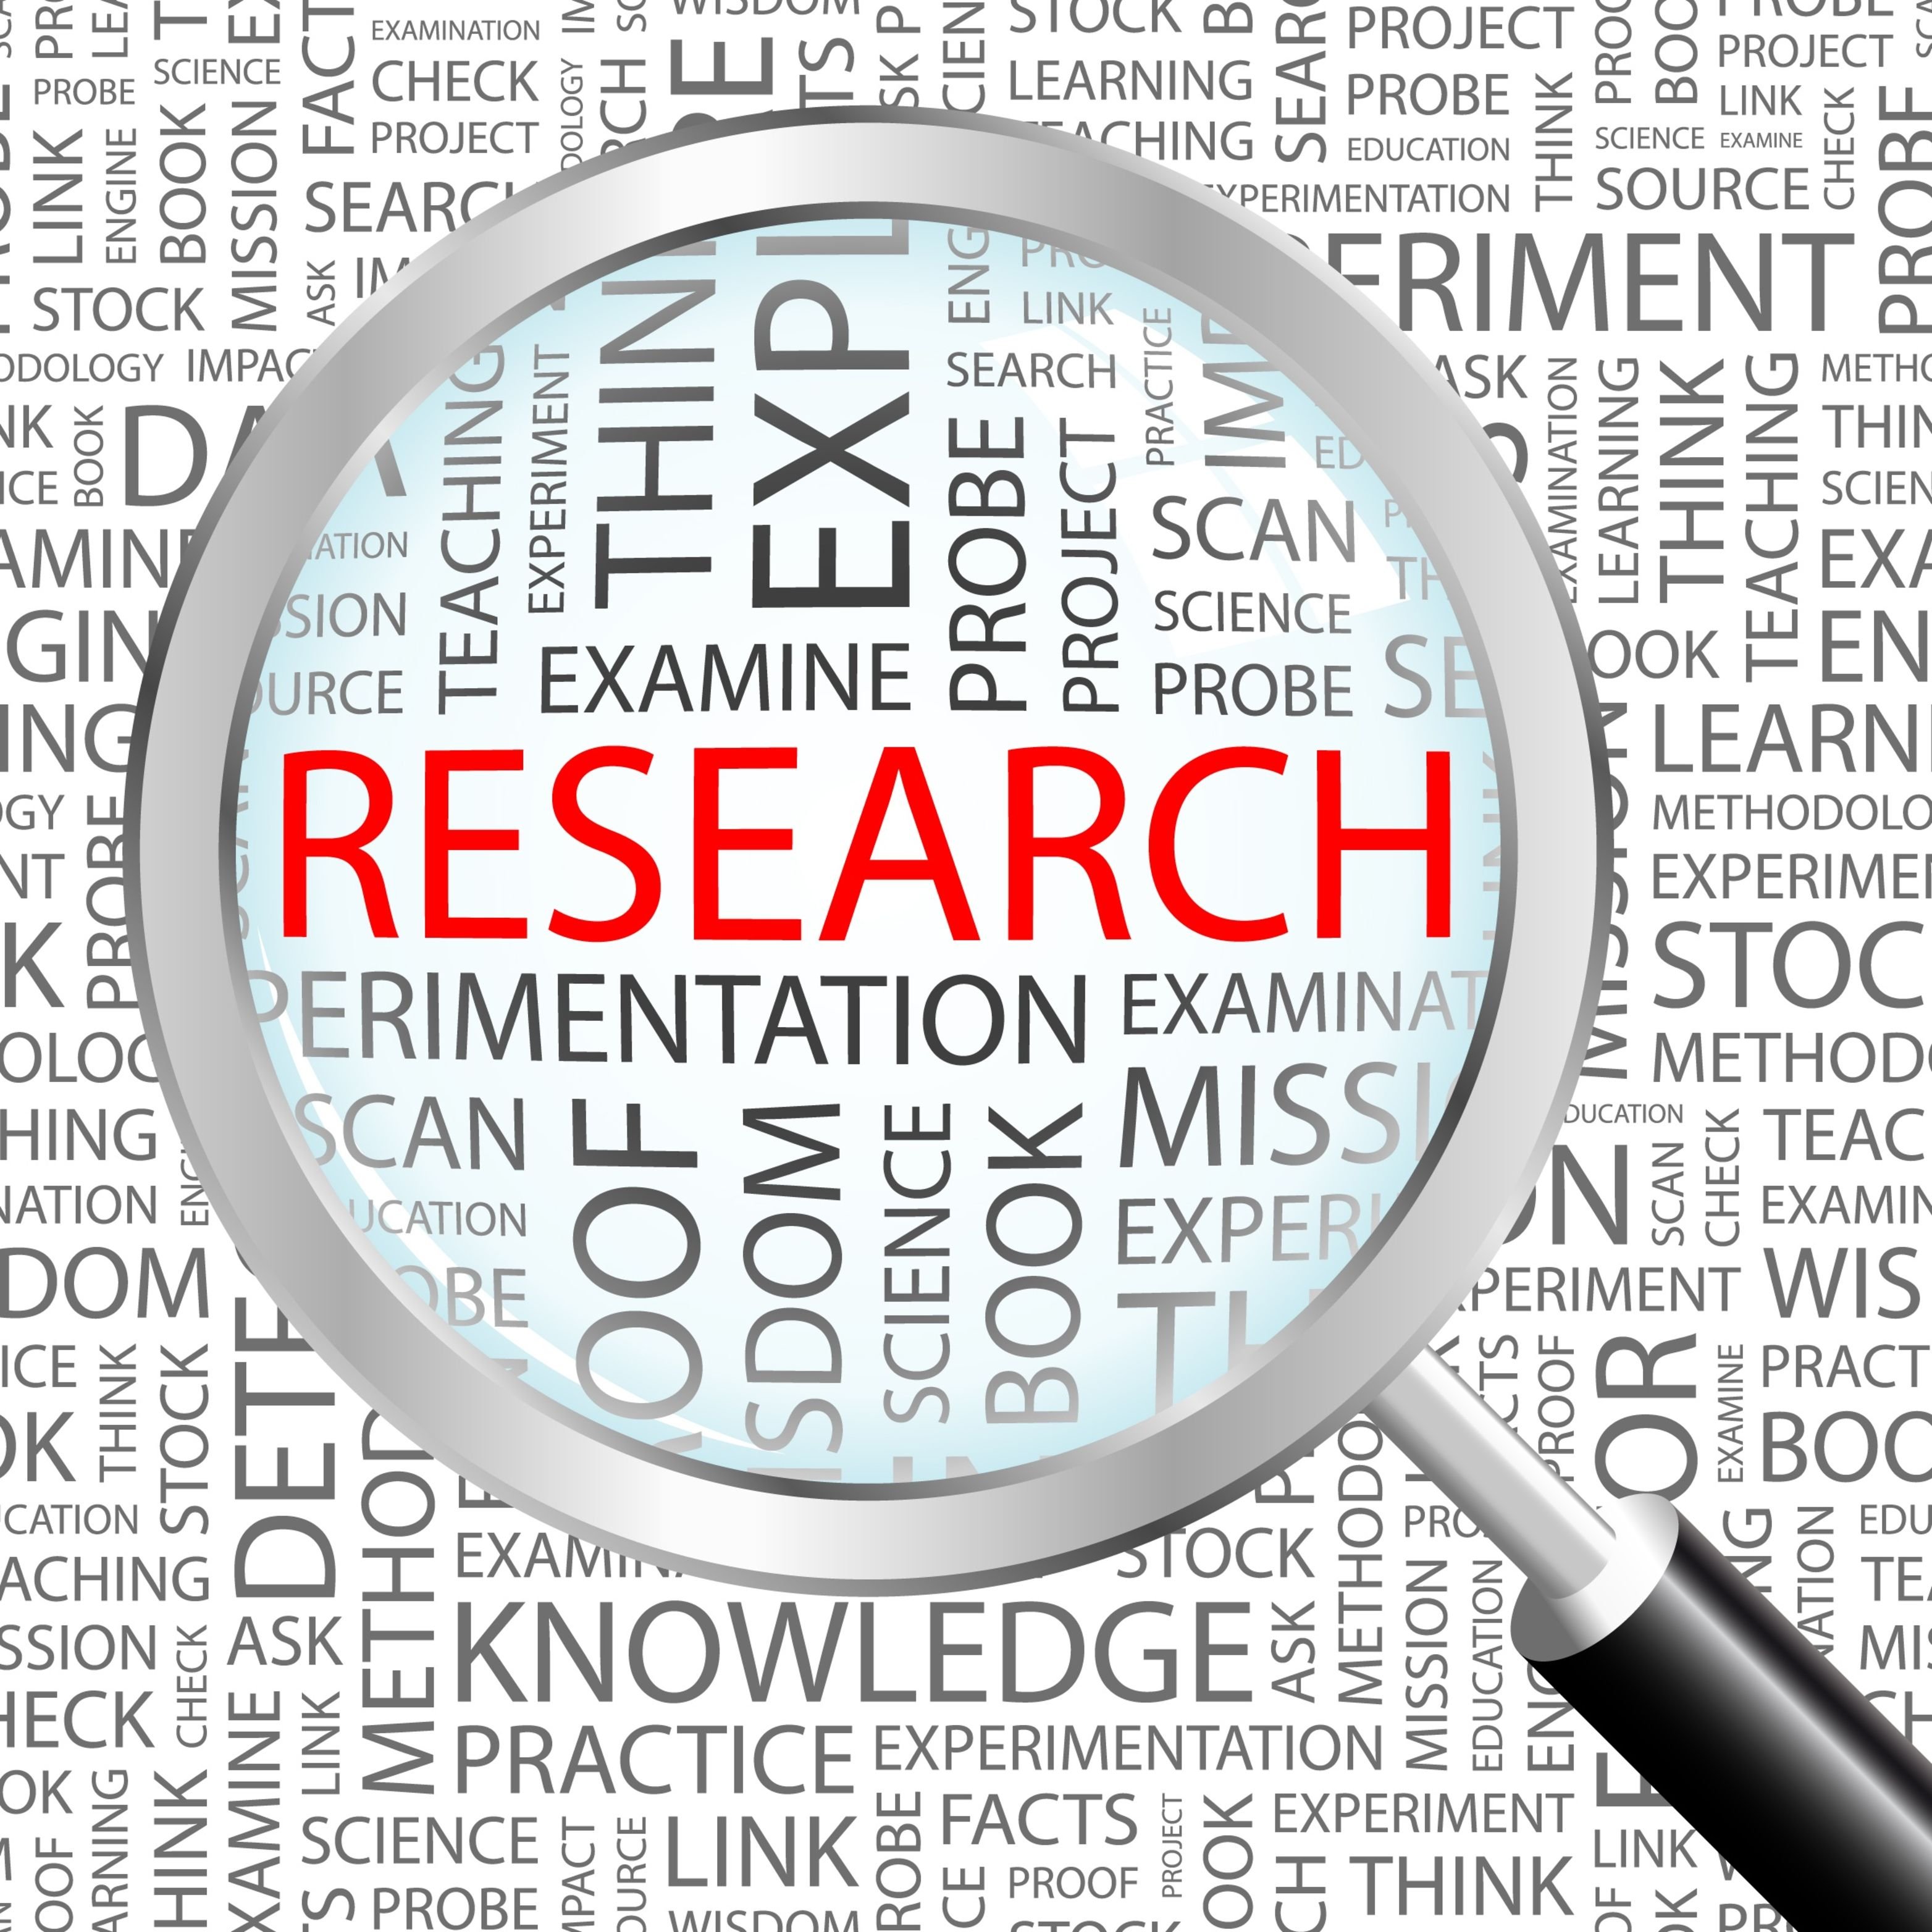 Article and Research Databases (Getty Research Institute) - The Getty